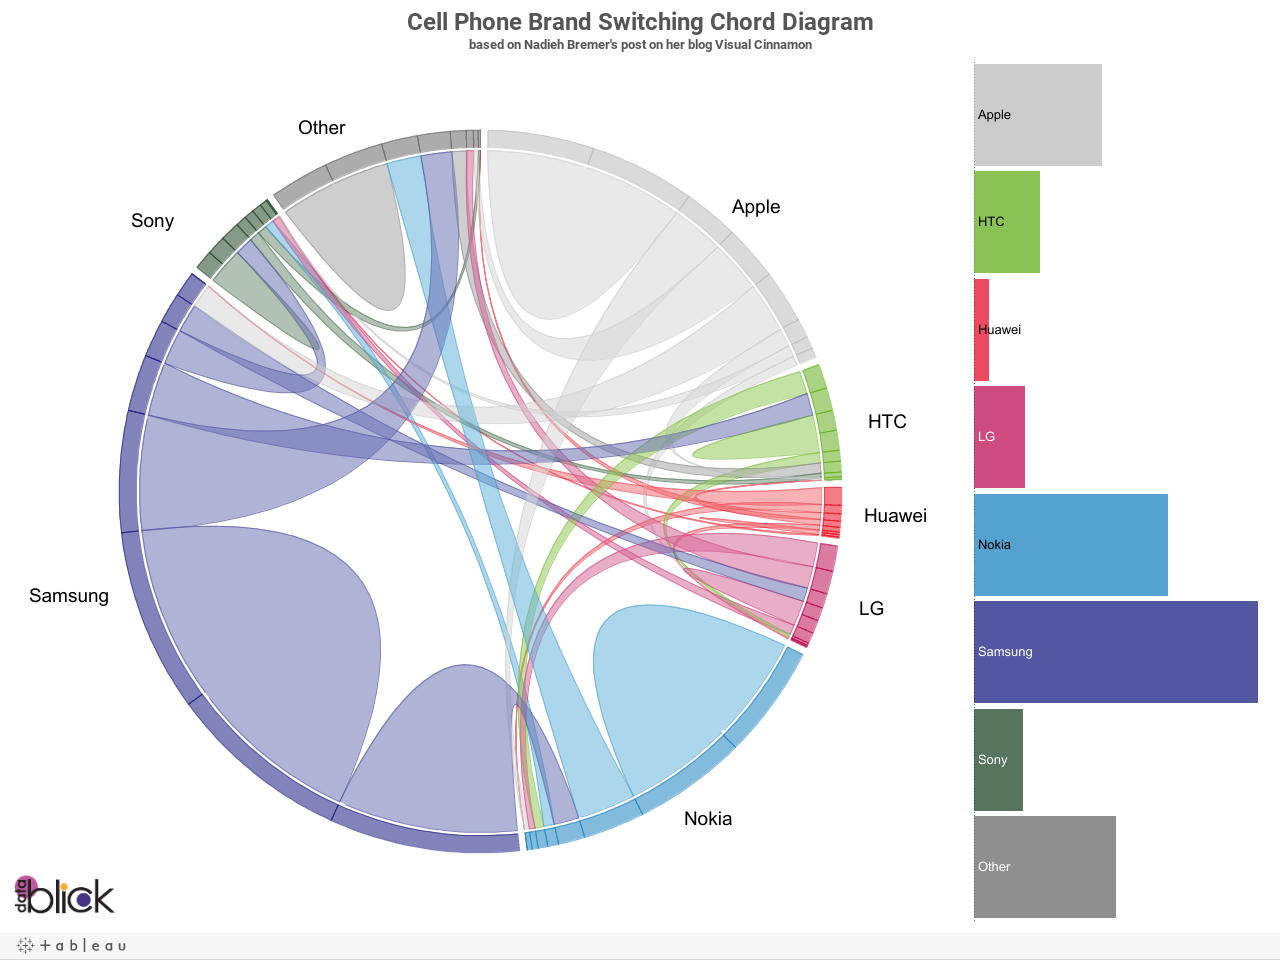 Cell Phone Brand Switching Chord Diagrambased on Nadieh Bremer's post on her blog Visual Cinnamon